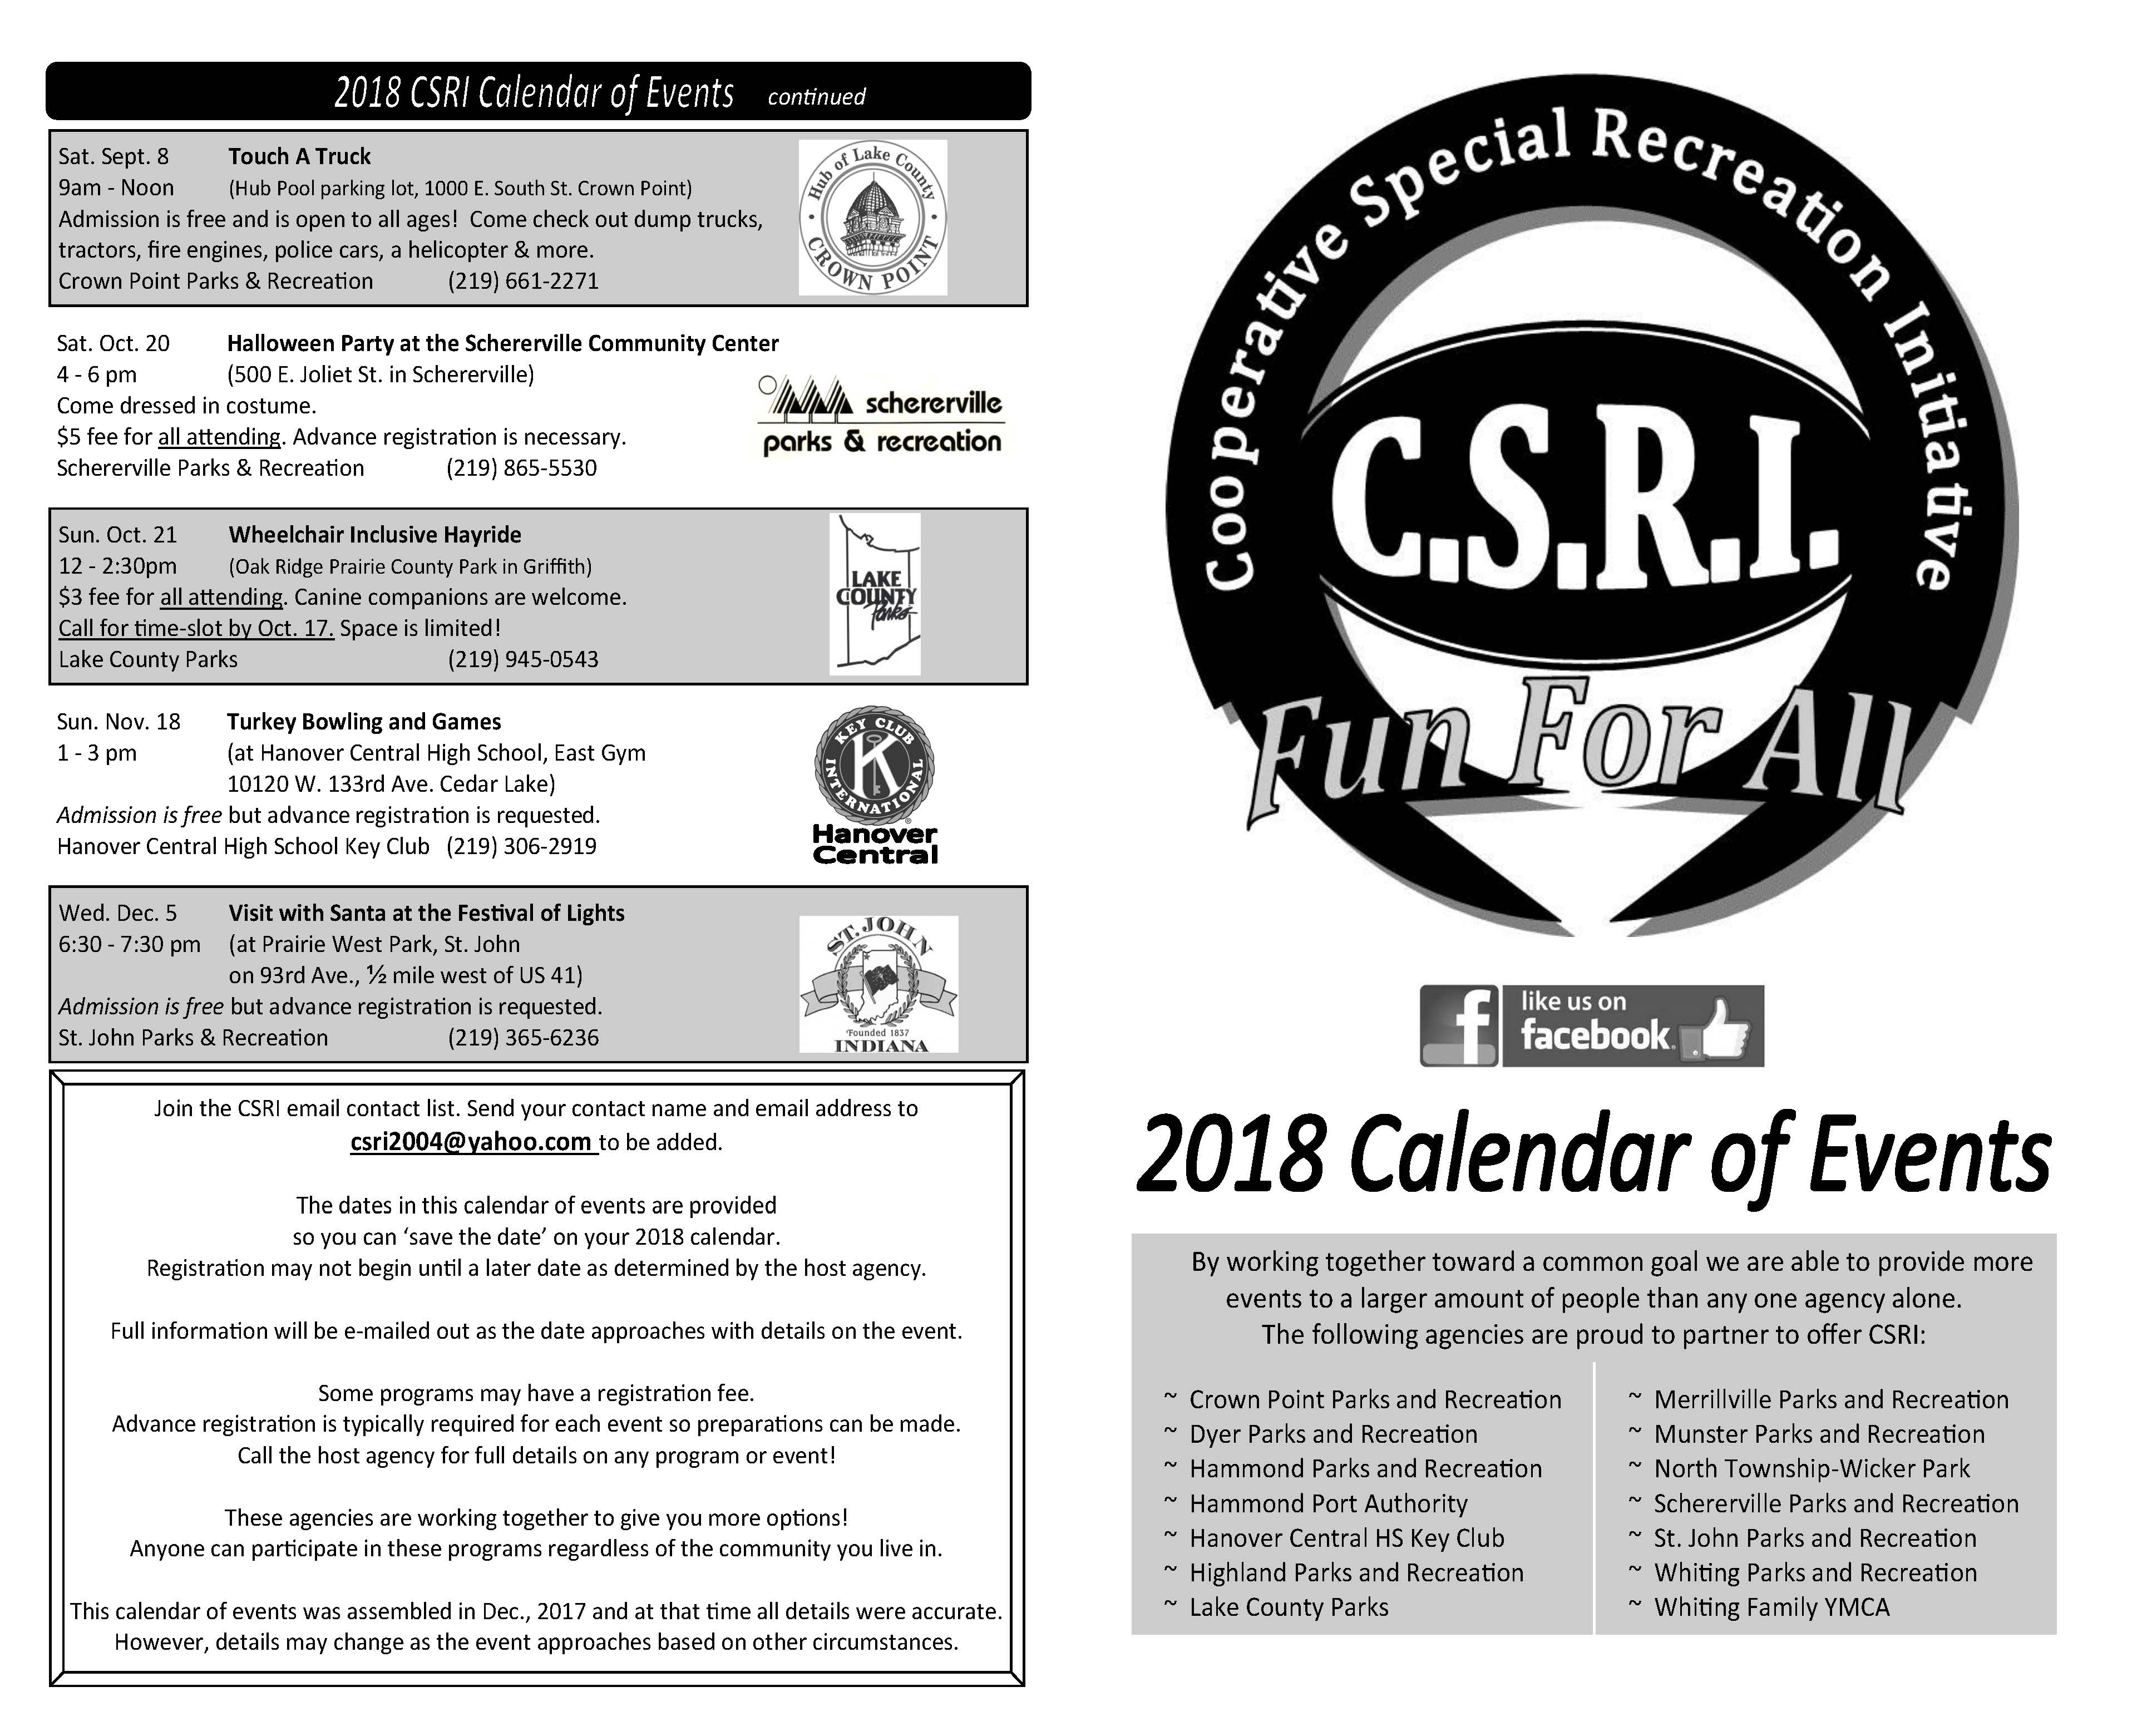 CSRI 2018 Calendar of Events - Please Click the Flyer for Information